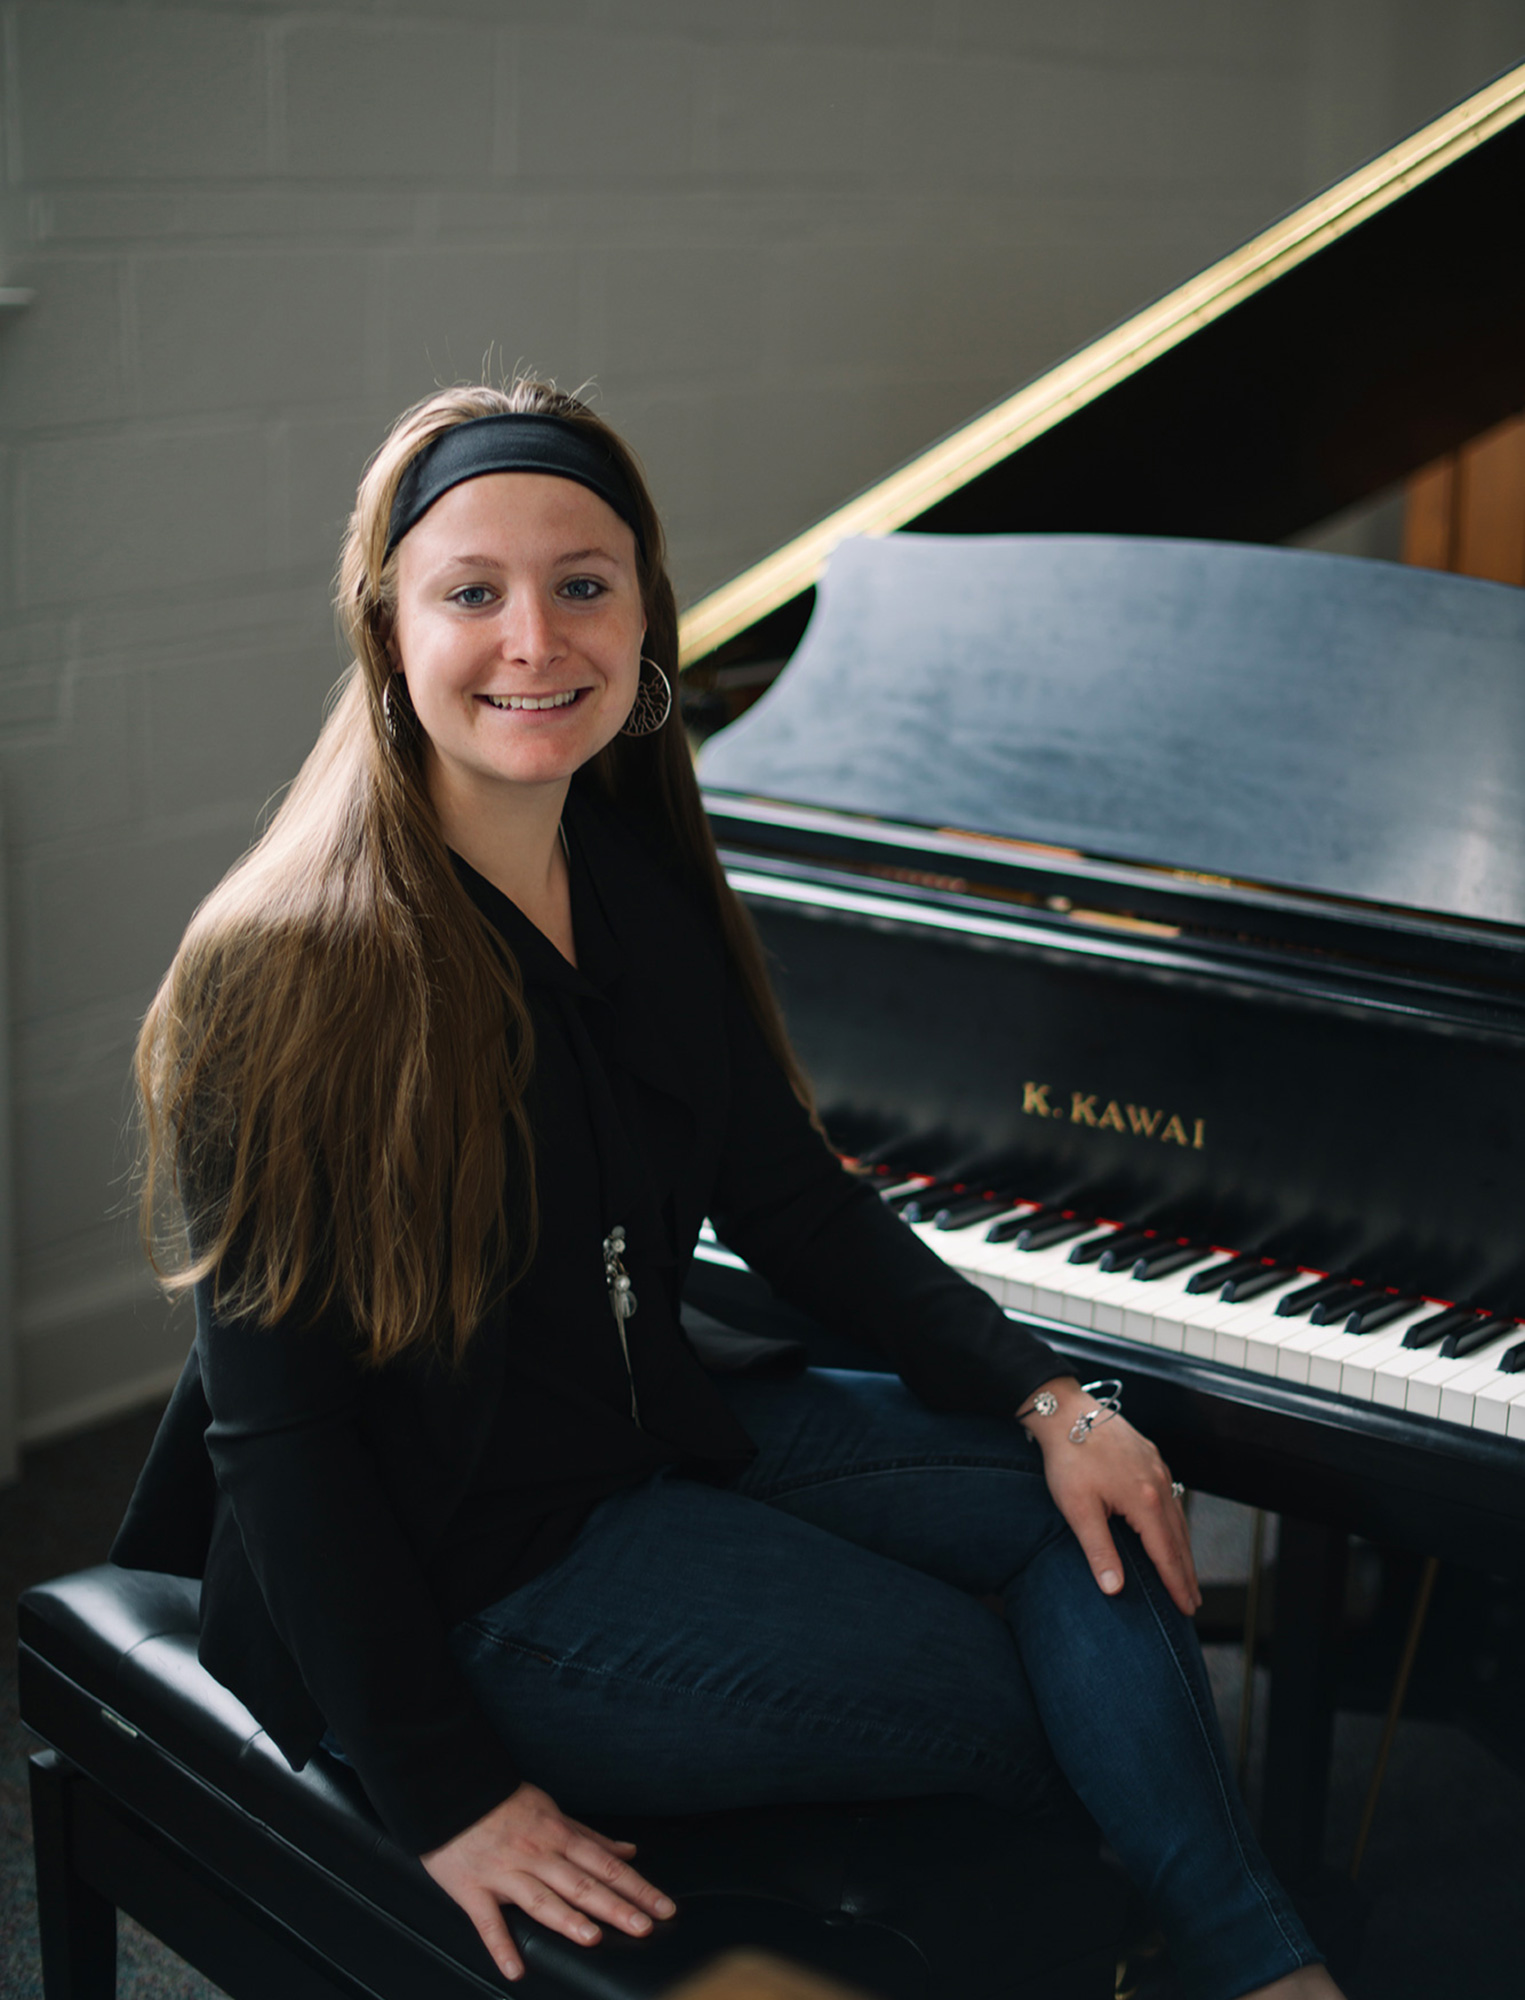 Her work in STEAM, strives to expand our knowledge and understanding of how performing music involves intricate circuitry in the brain.